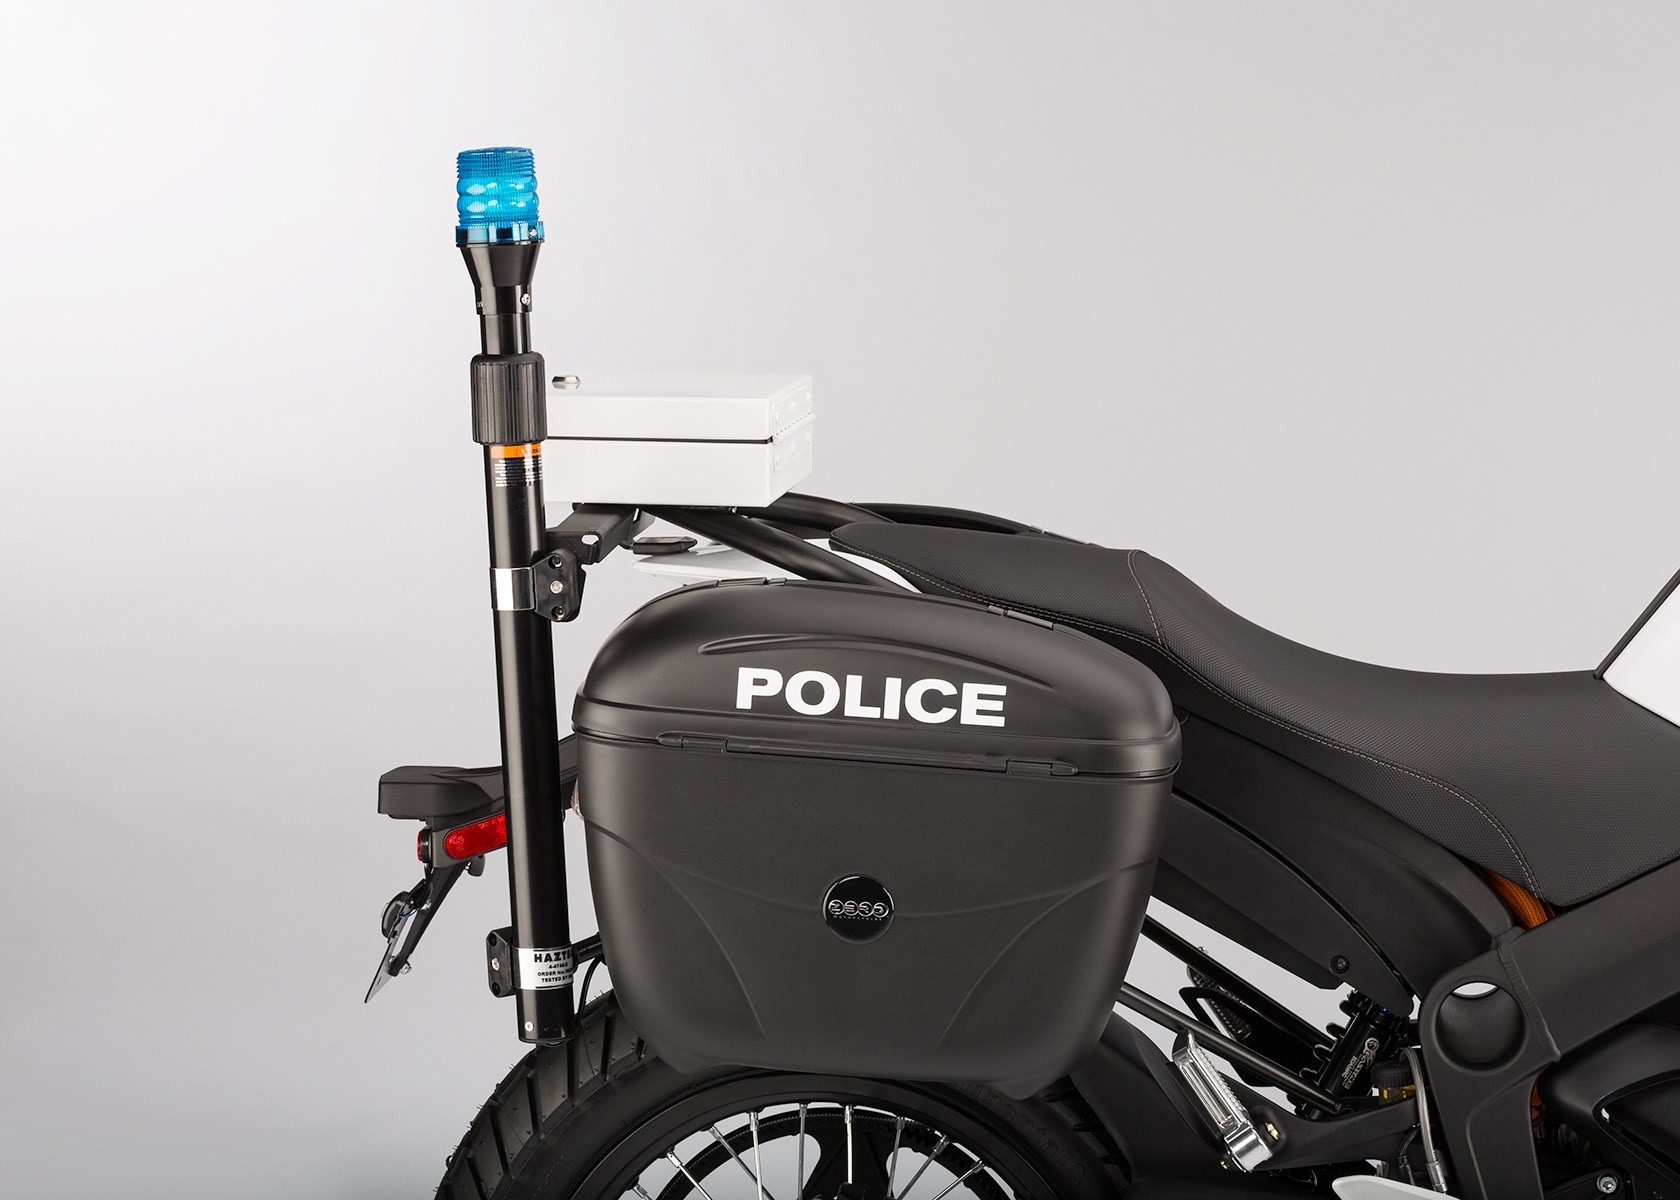 2014 Zero Police Electric Motorcycle: Light Pole